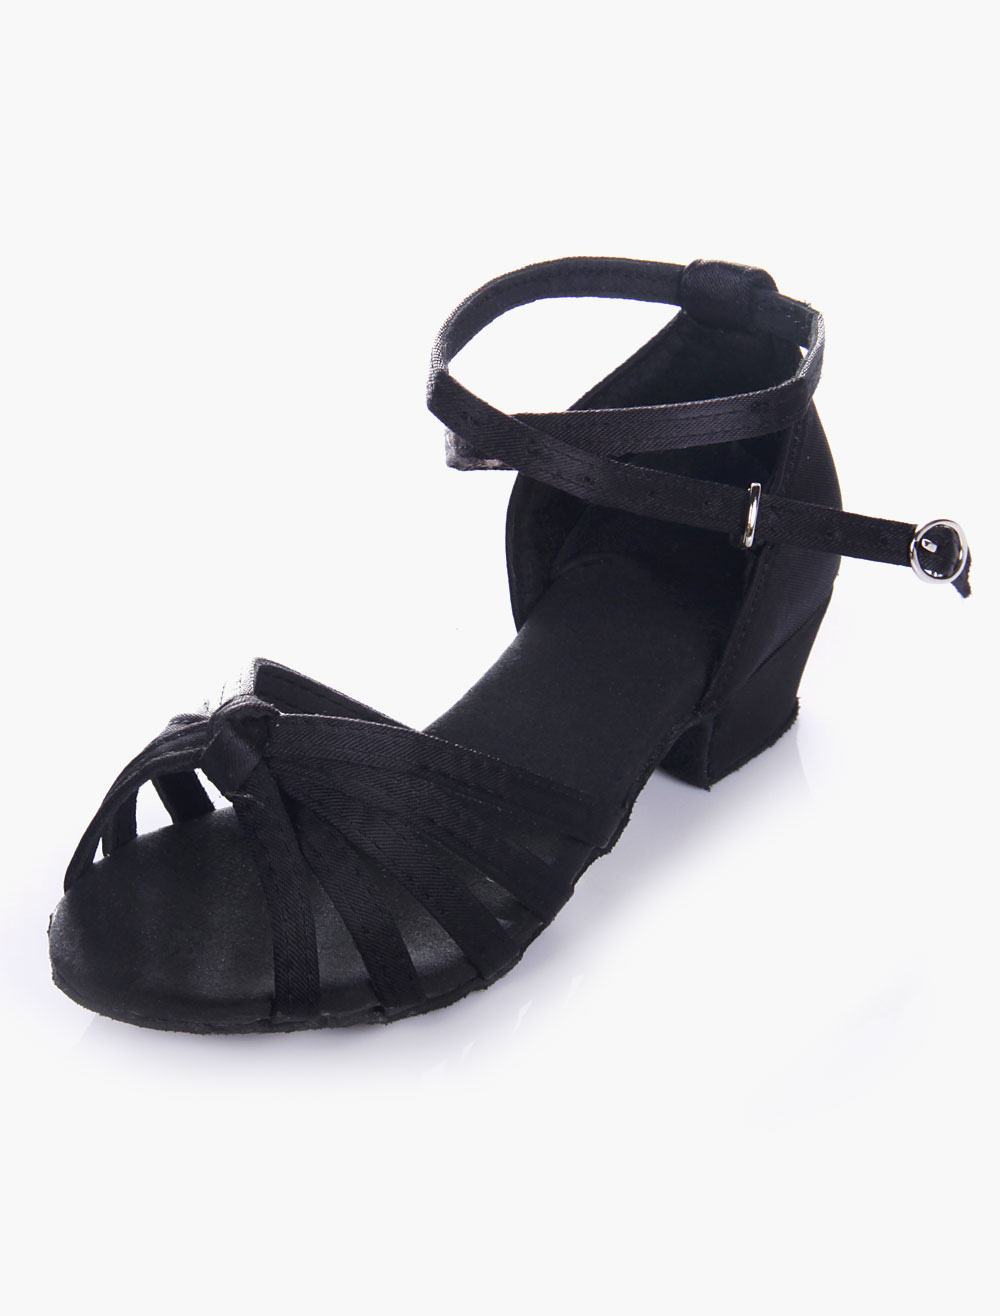 Quality Black Soft Sole Open Toe Satin Ballroom Shoes For Kids